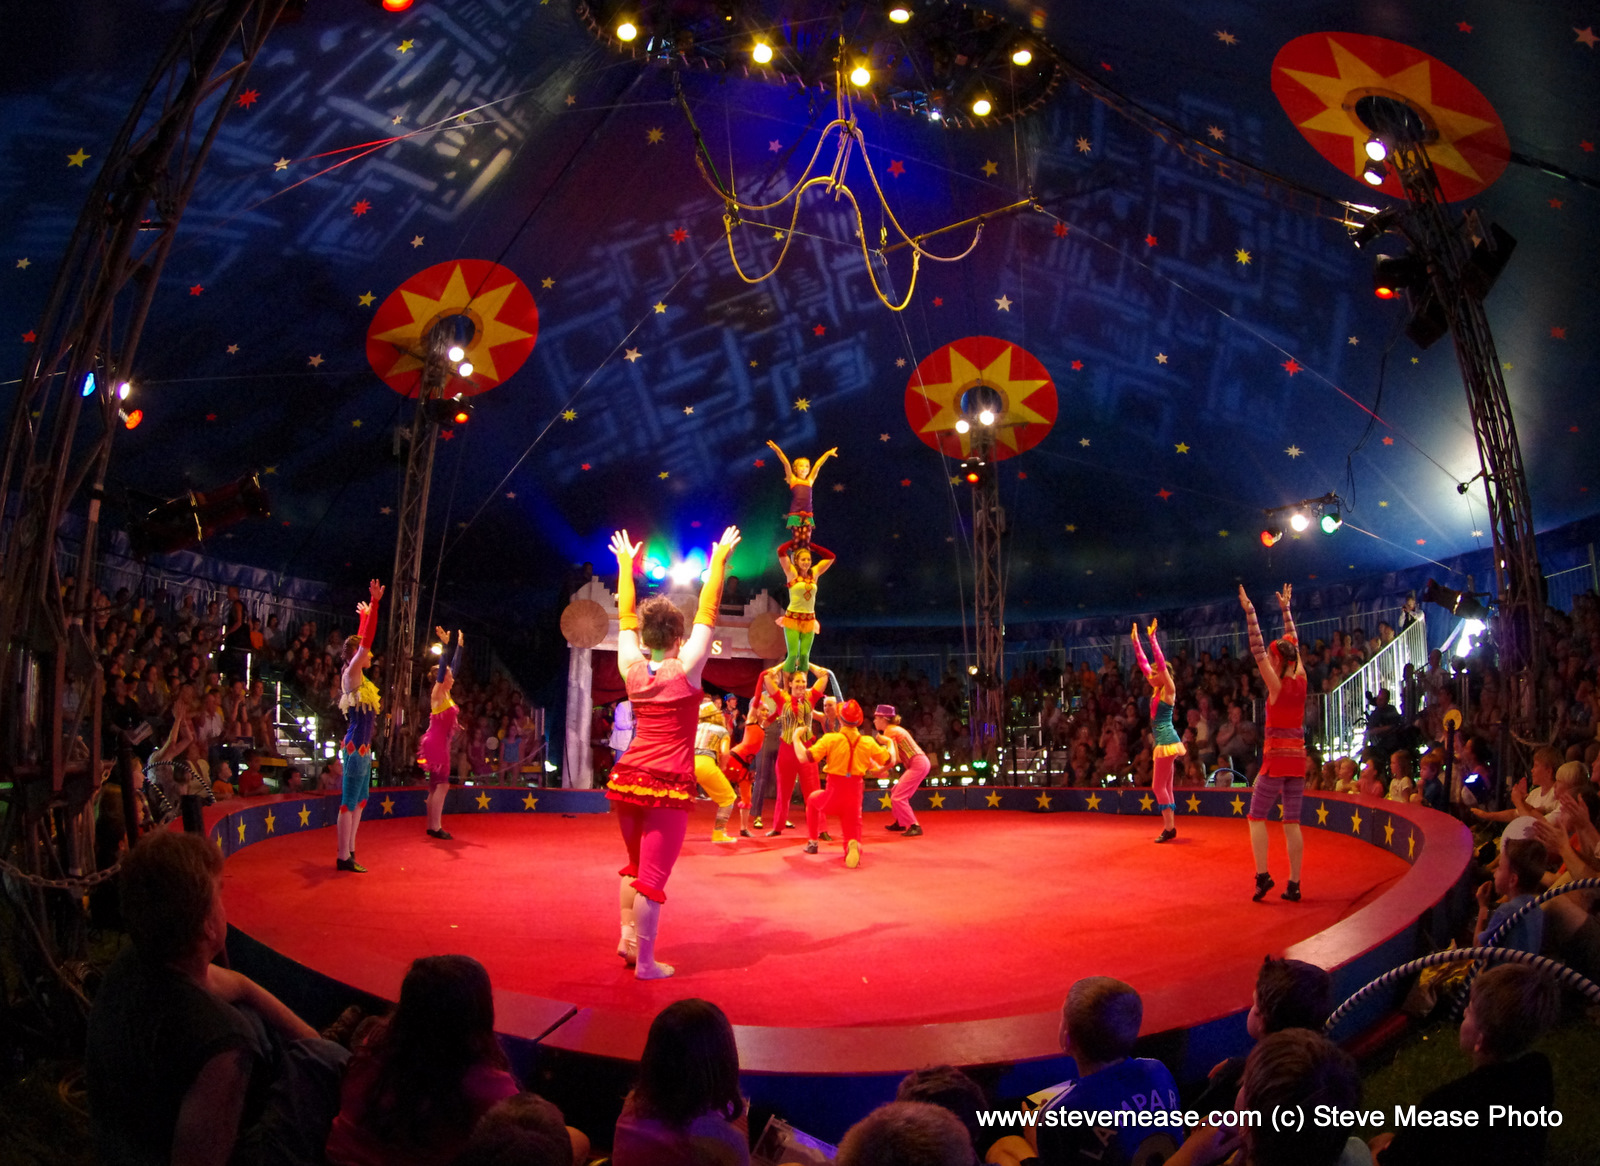 Inside clipart circus Inside Prism Pinterest inside circus